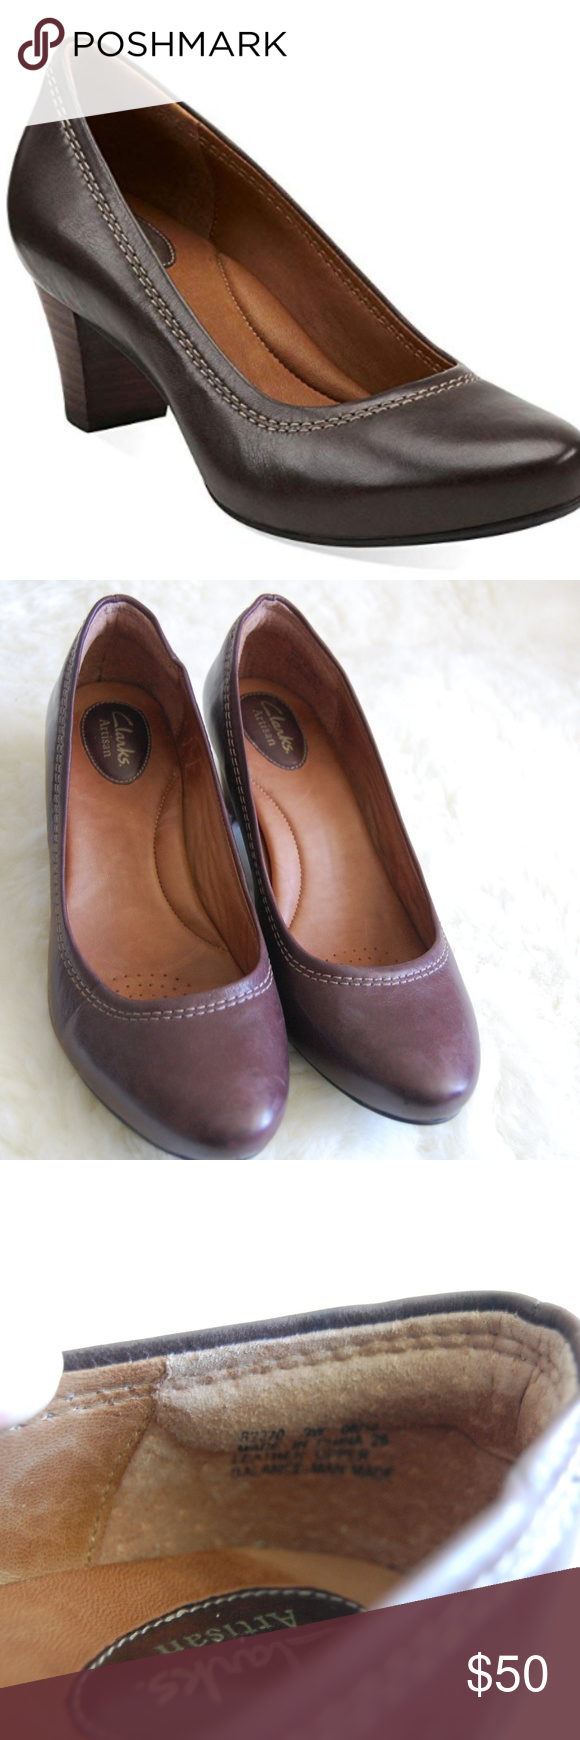 New Clarks heels - Dark Brown - 9 W New Clarks Artisan Decade Rana women's  pump displays the natural beauty of rich premium leather in dark brown.